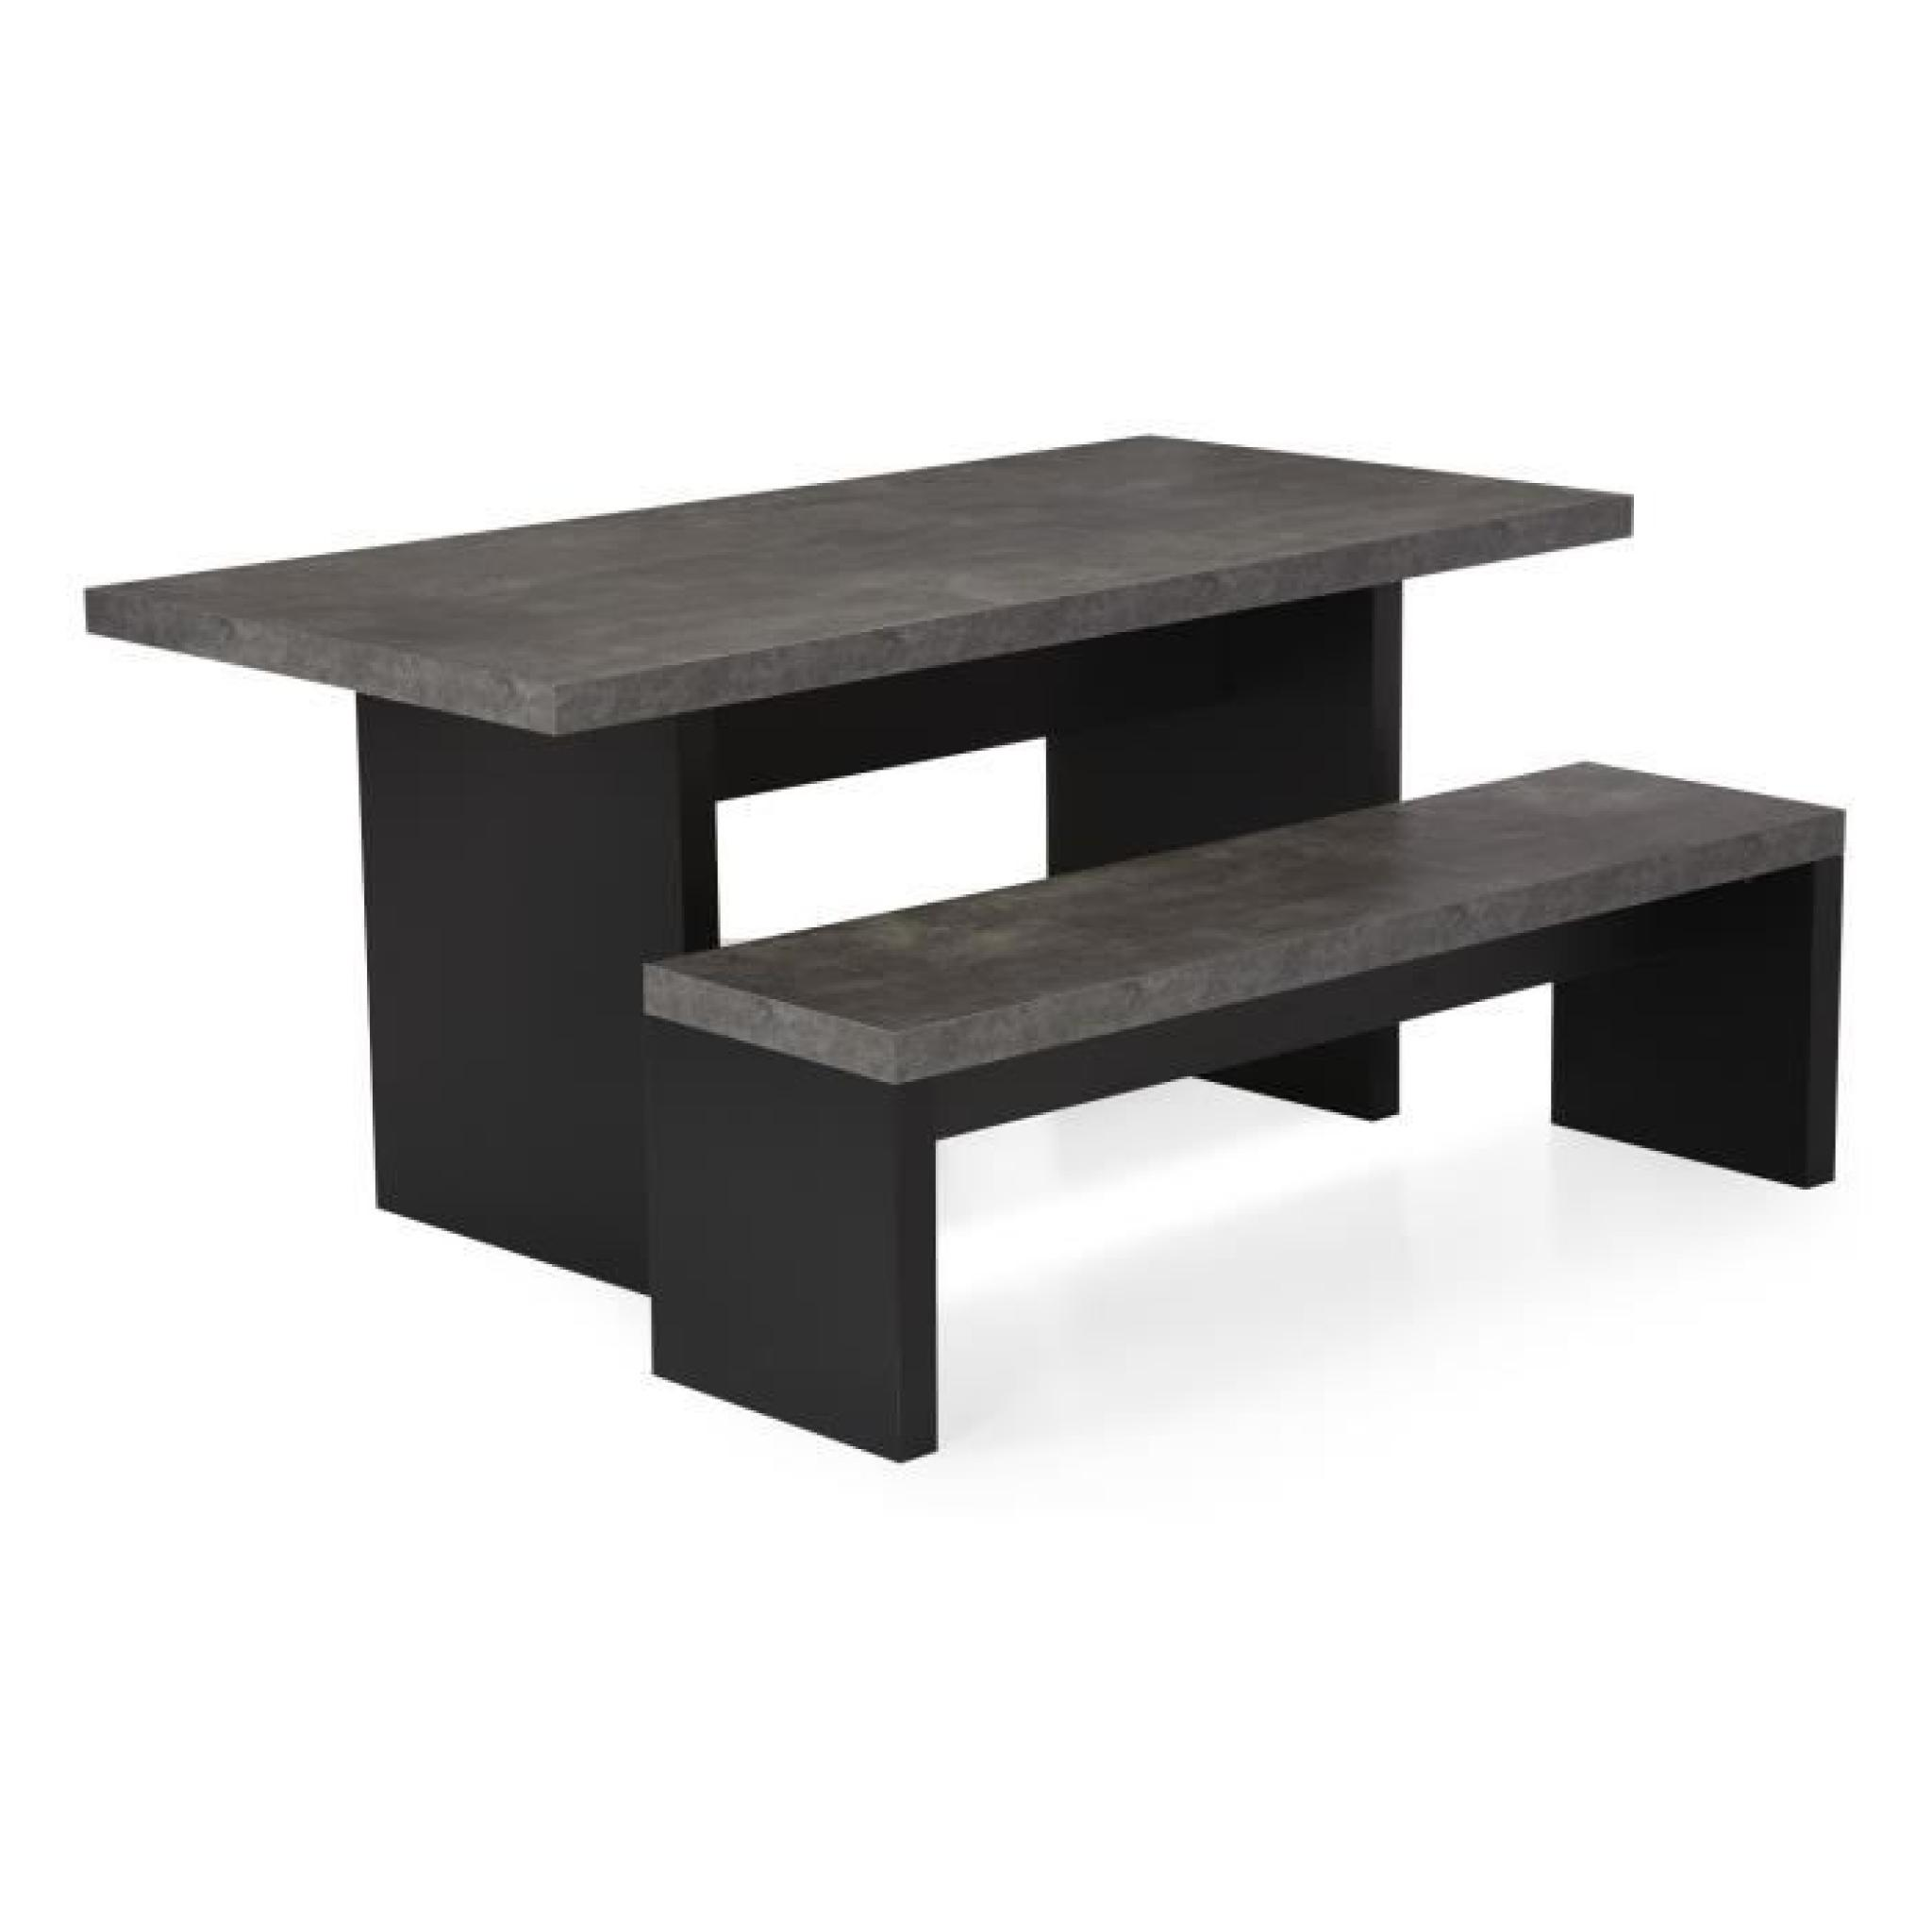 hilo table de repas rectangulaire imitation b ton brut l160cm achat vente table salle a manger. Black Bedroom Furniture Sets. Home Design Ideas